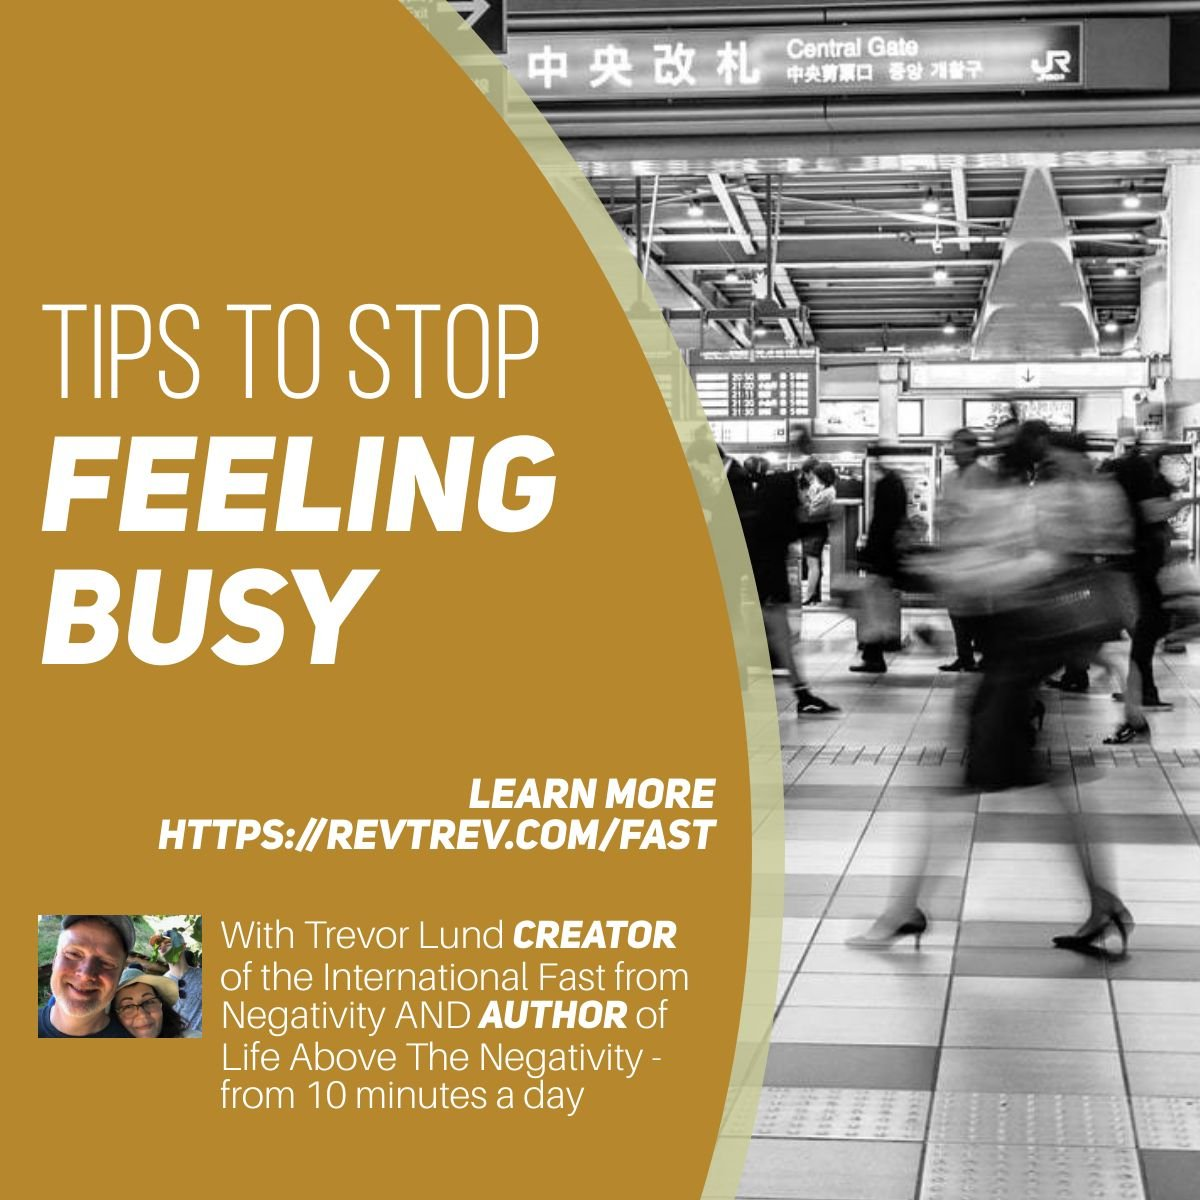 Tips to stop feeling busy via @trevorlund